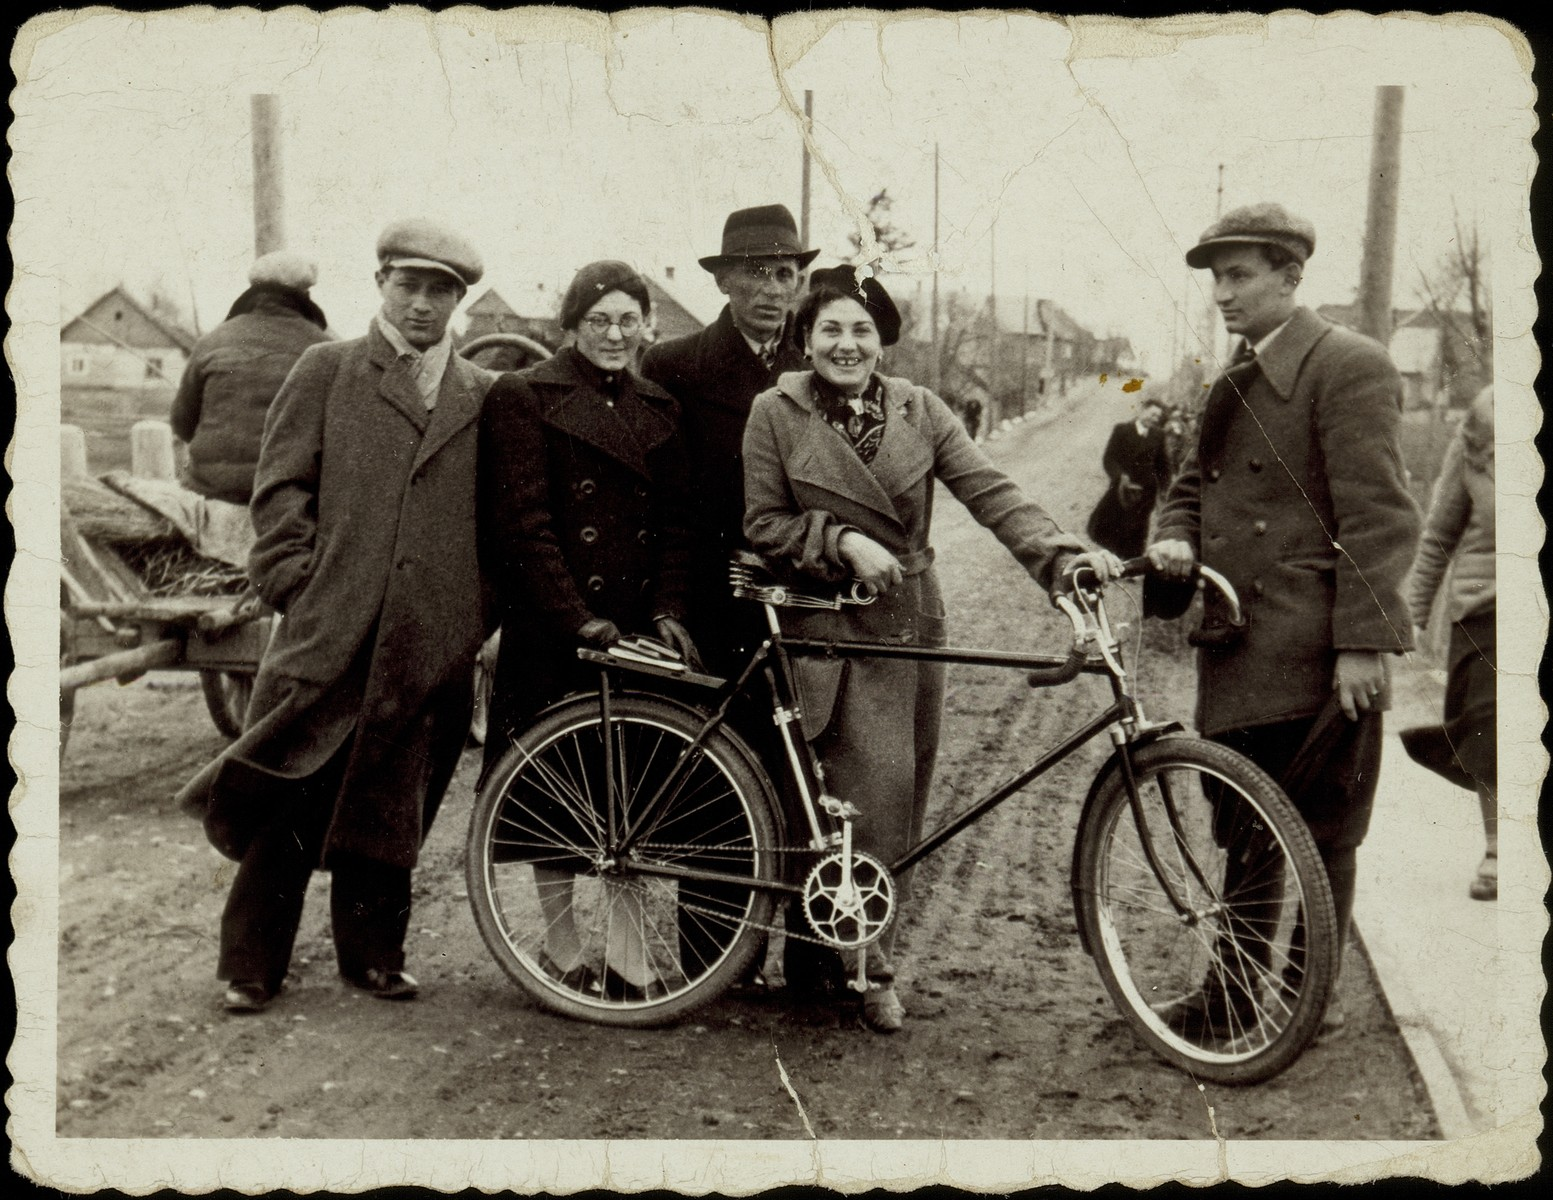 Bluma Lubetski shows off the new bike of her fiance, Etchke Jurdiczansk, on the Vilna Street First Bridge.    From right to left are Etchke Jurdiczanski, Bluma Lubetski, Mickhe Gruznik, Bluma's sister Etele Lubetski, and Hayyim-Yoshke Szczuczynski.    Etele was raped and murdered in Eisiskes during the September 1941 massacre.  The other four survived the war in the Soviet Union.